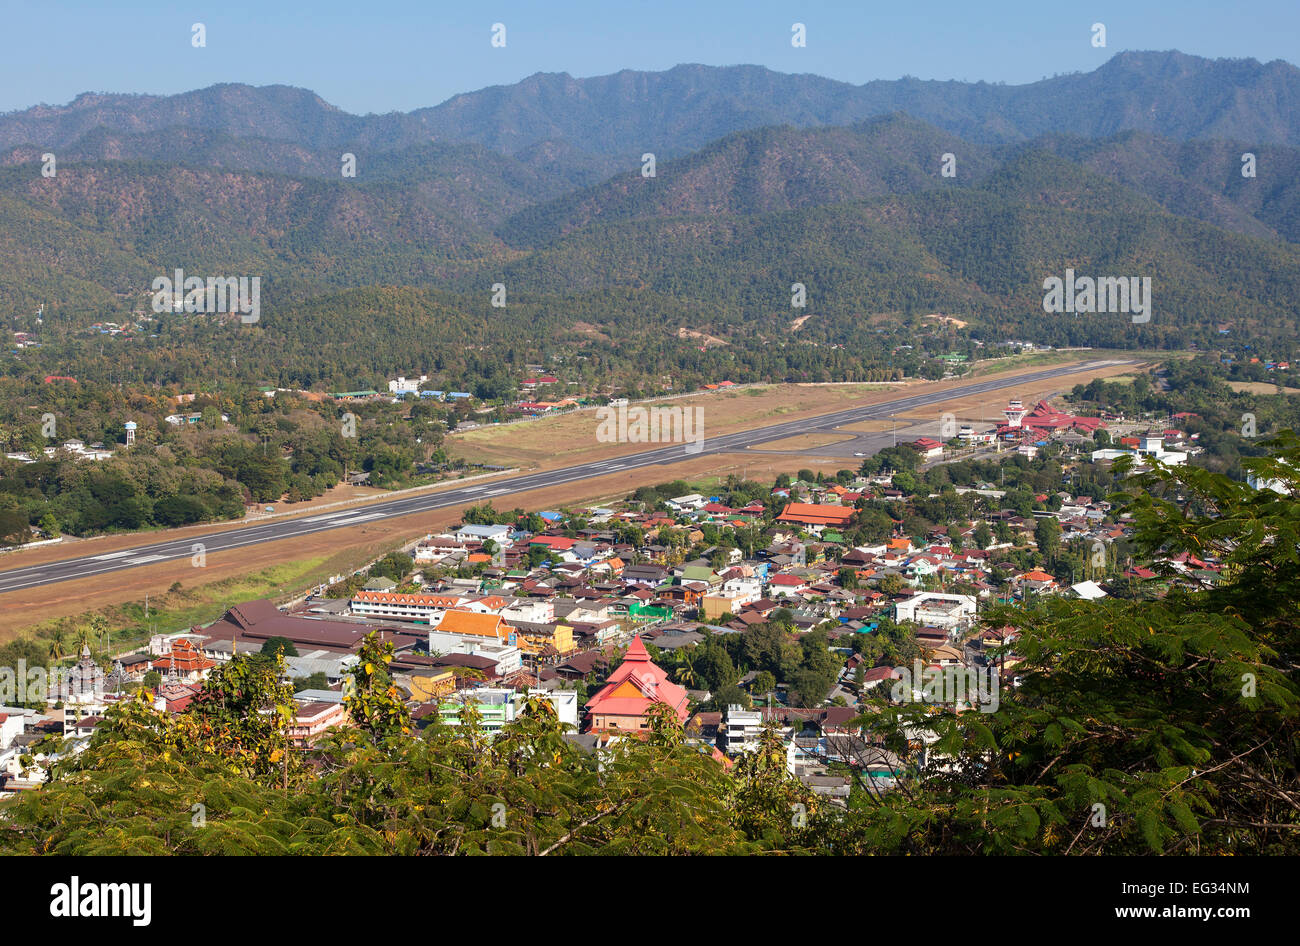 The City of Mae Hong Son, Northern Thailand - Stock Image